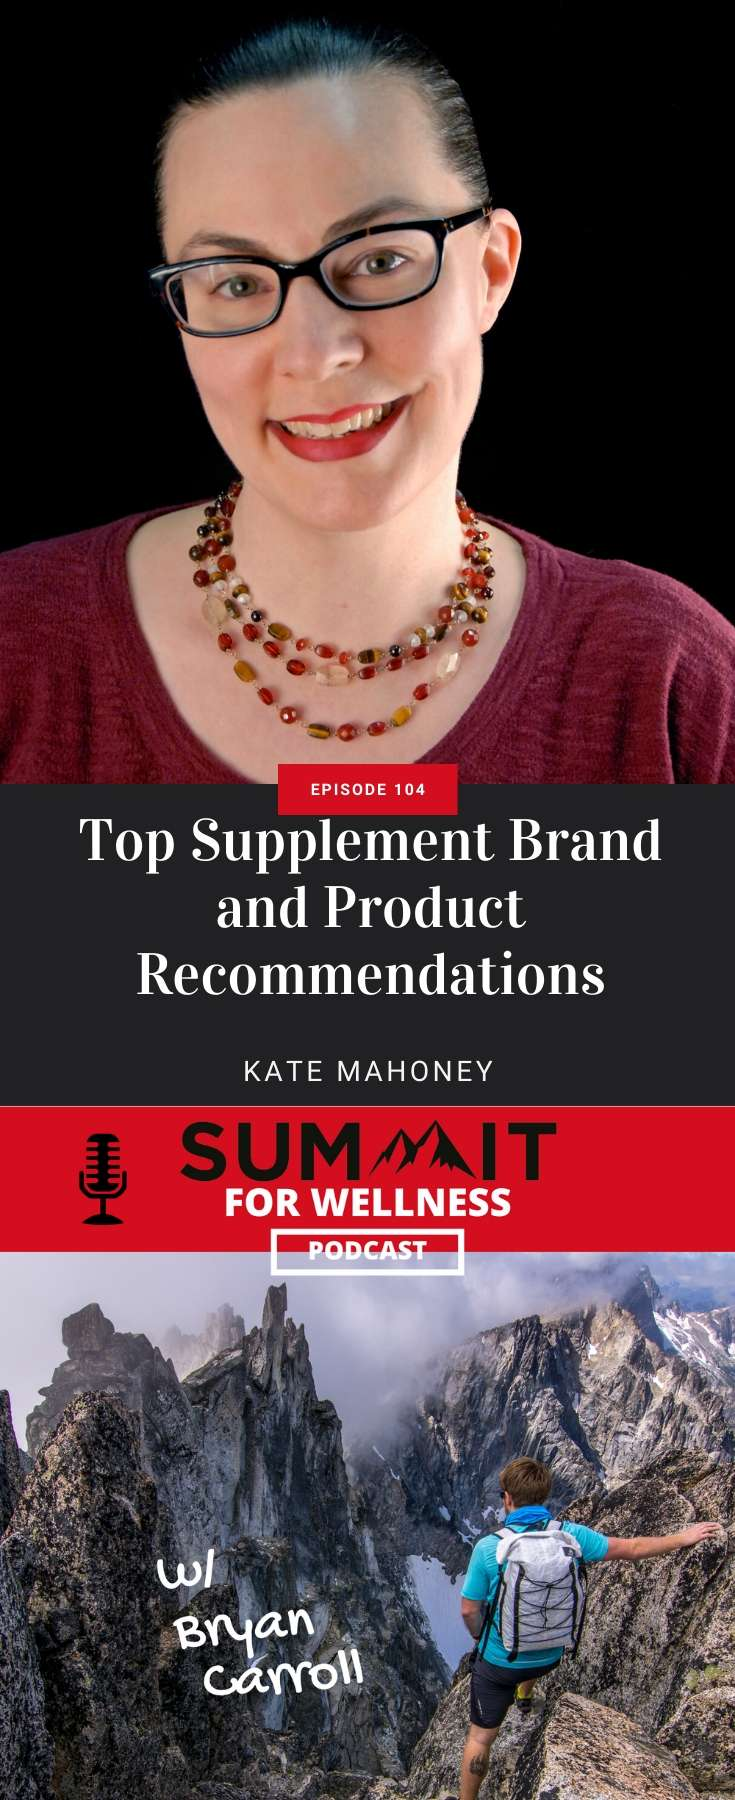 Learn from Kate Mahoney about the best supplements brands and products